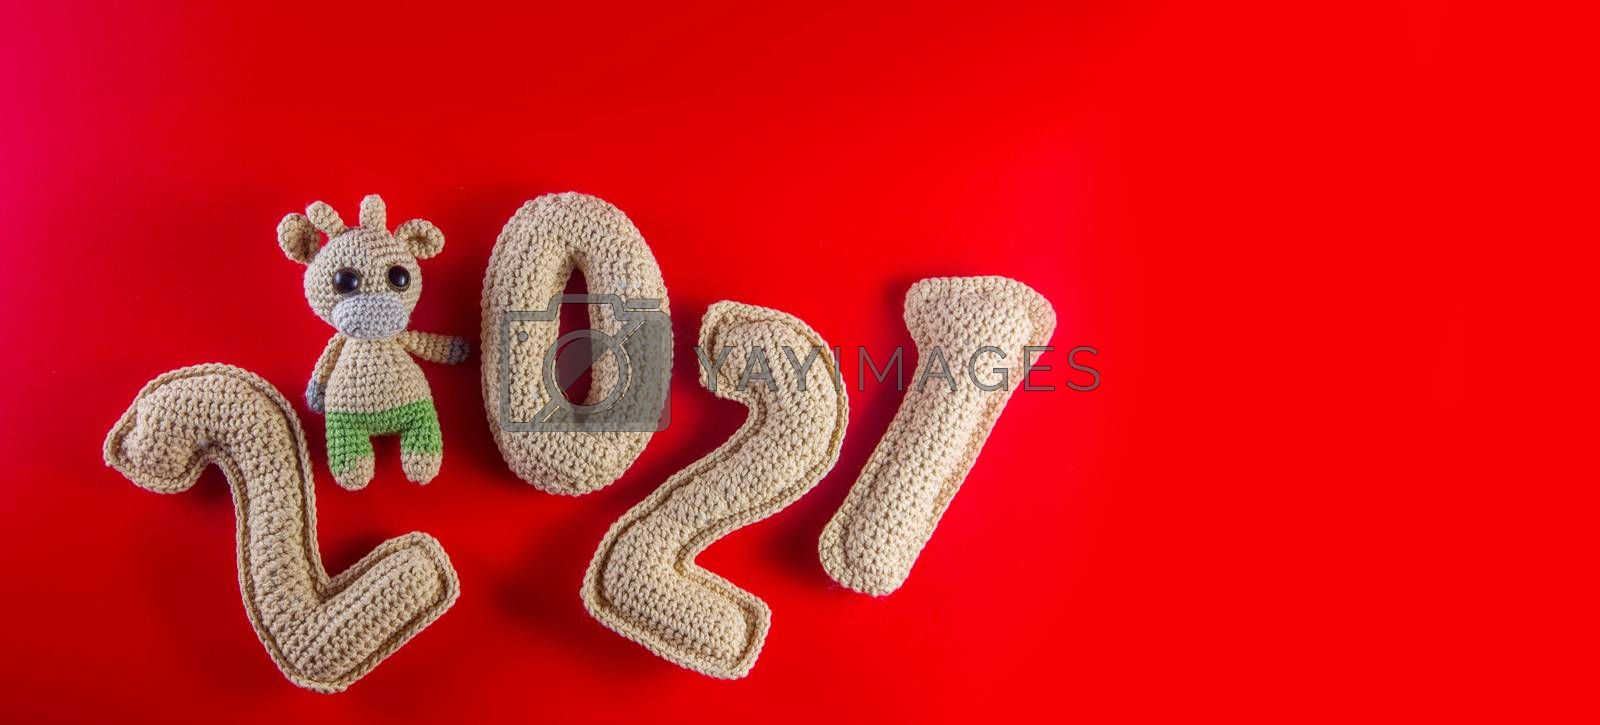 Cristmas background with knitted toy bull symbol of chinese new year 2021 by galinasharapova